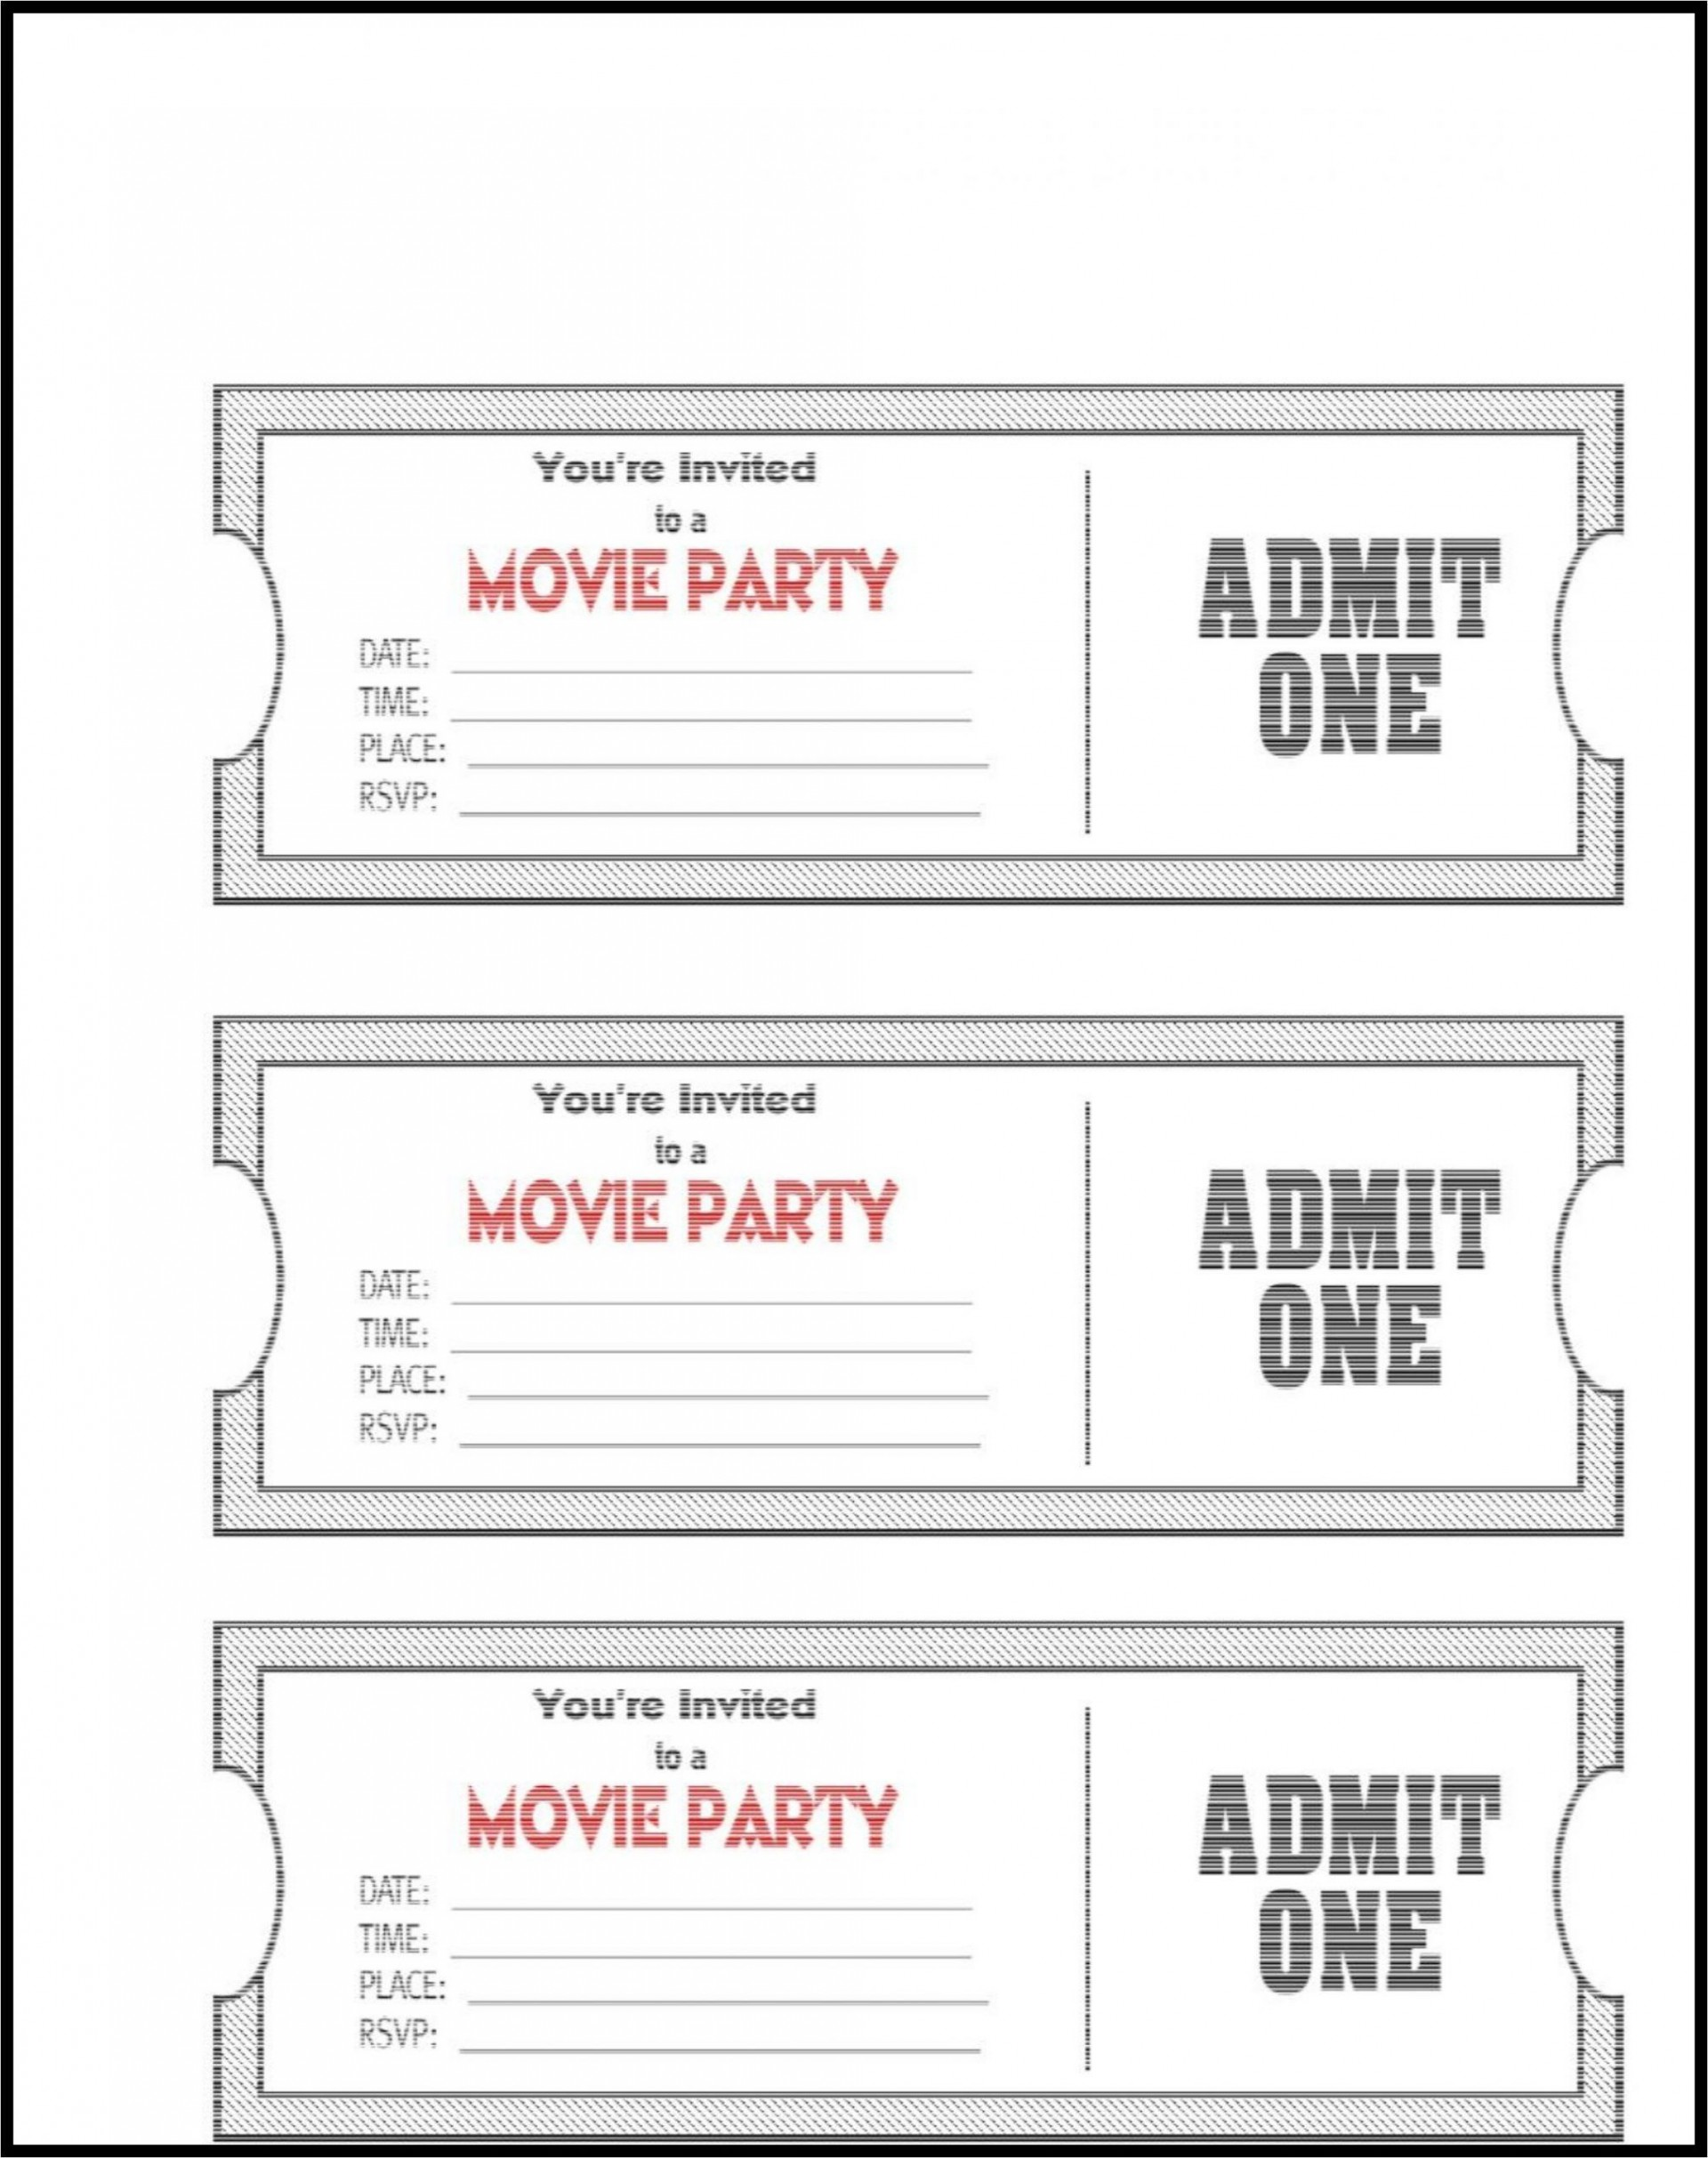 006 Impressive Editable Ticket Template Free High Definition  Word Airline Raffle1920